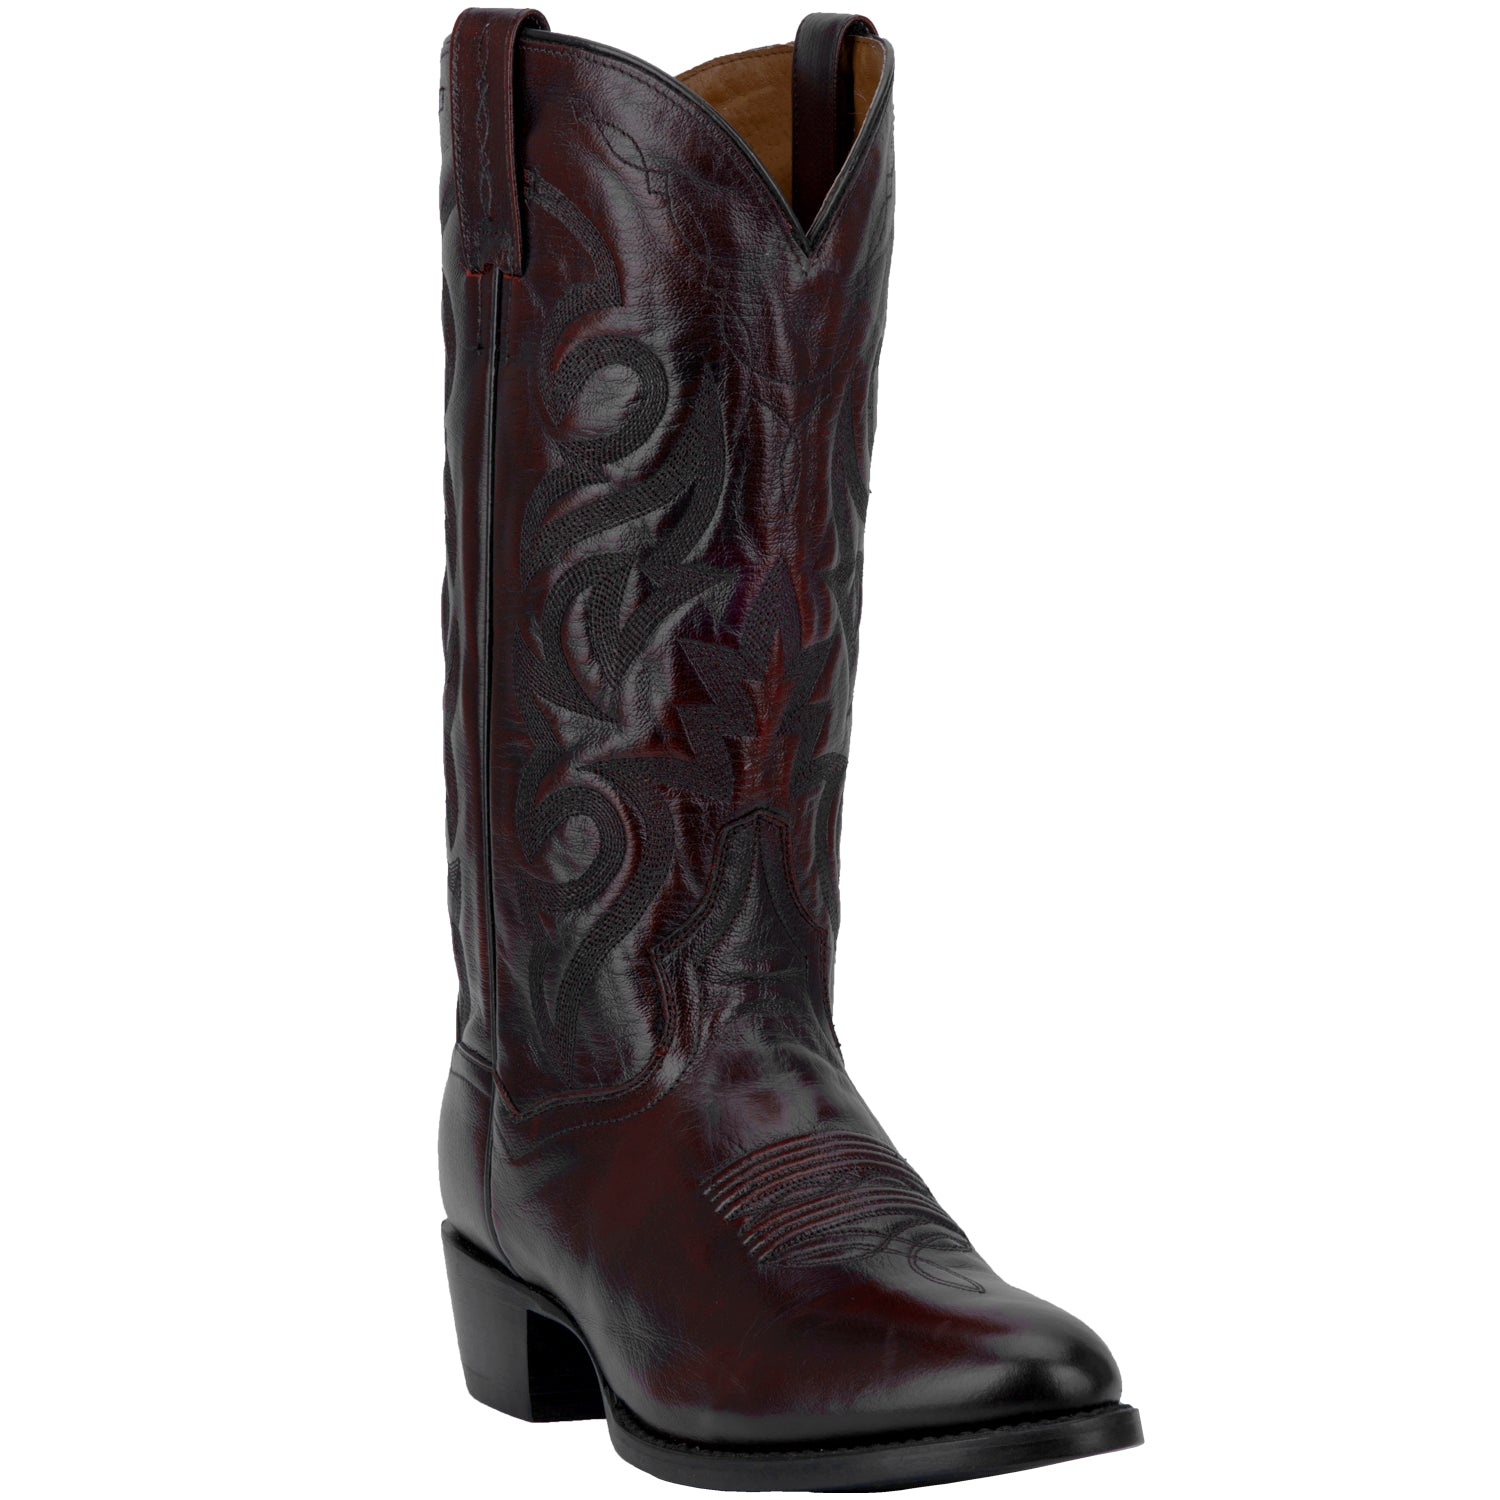 MILWAUKEE LEATHER BOOT 4197057069098